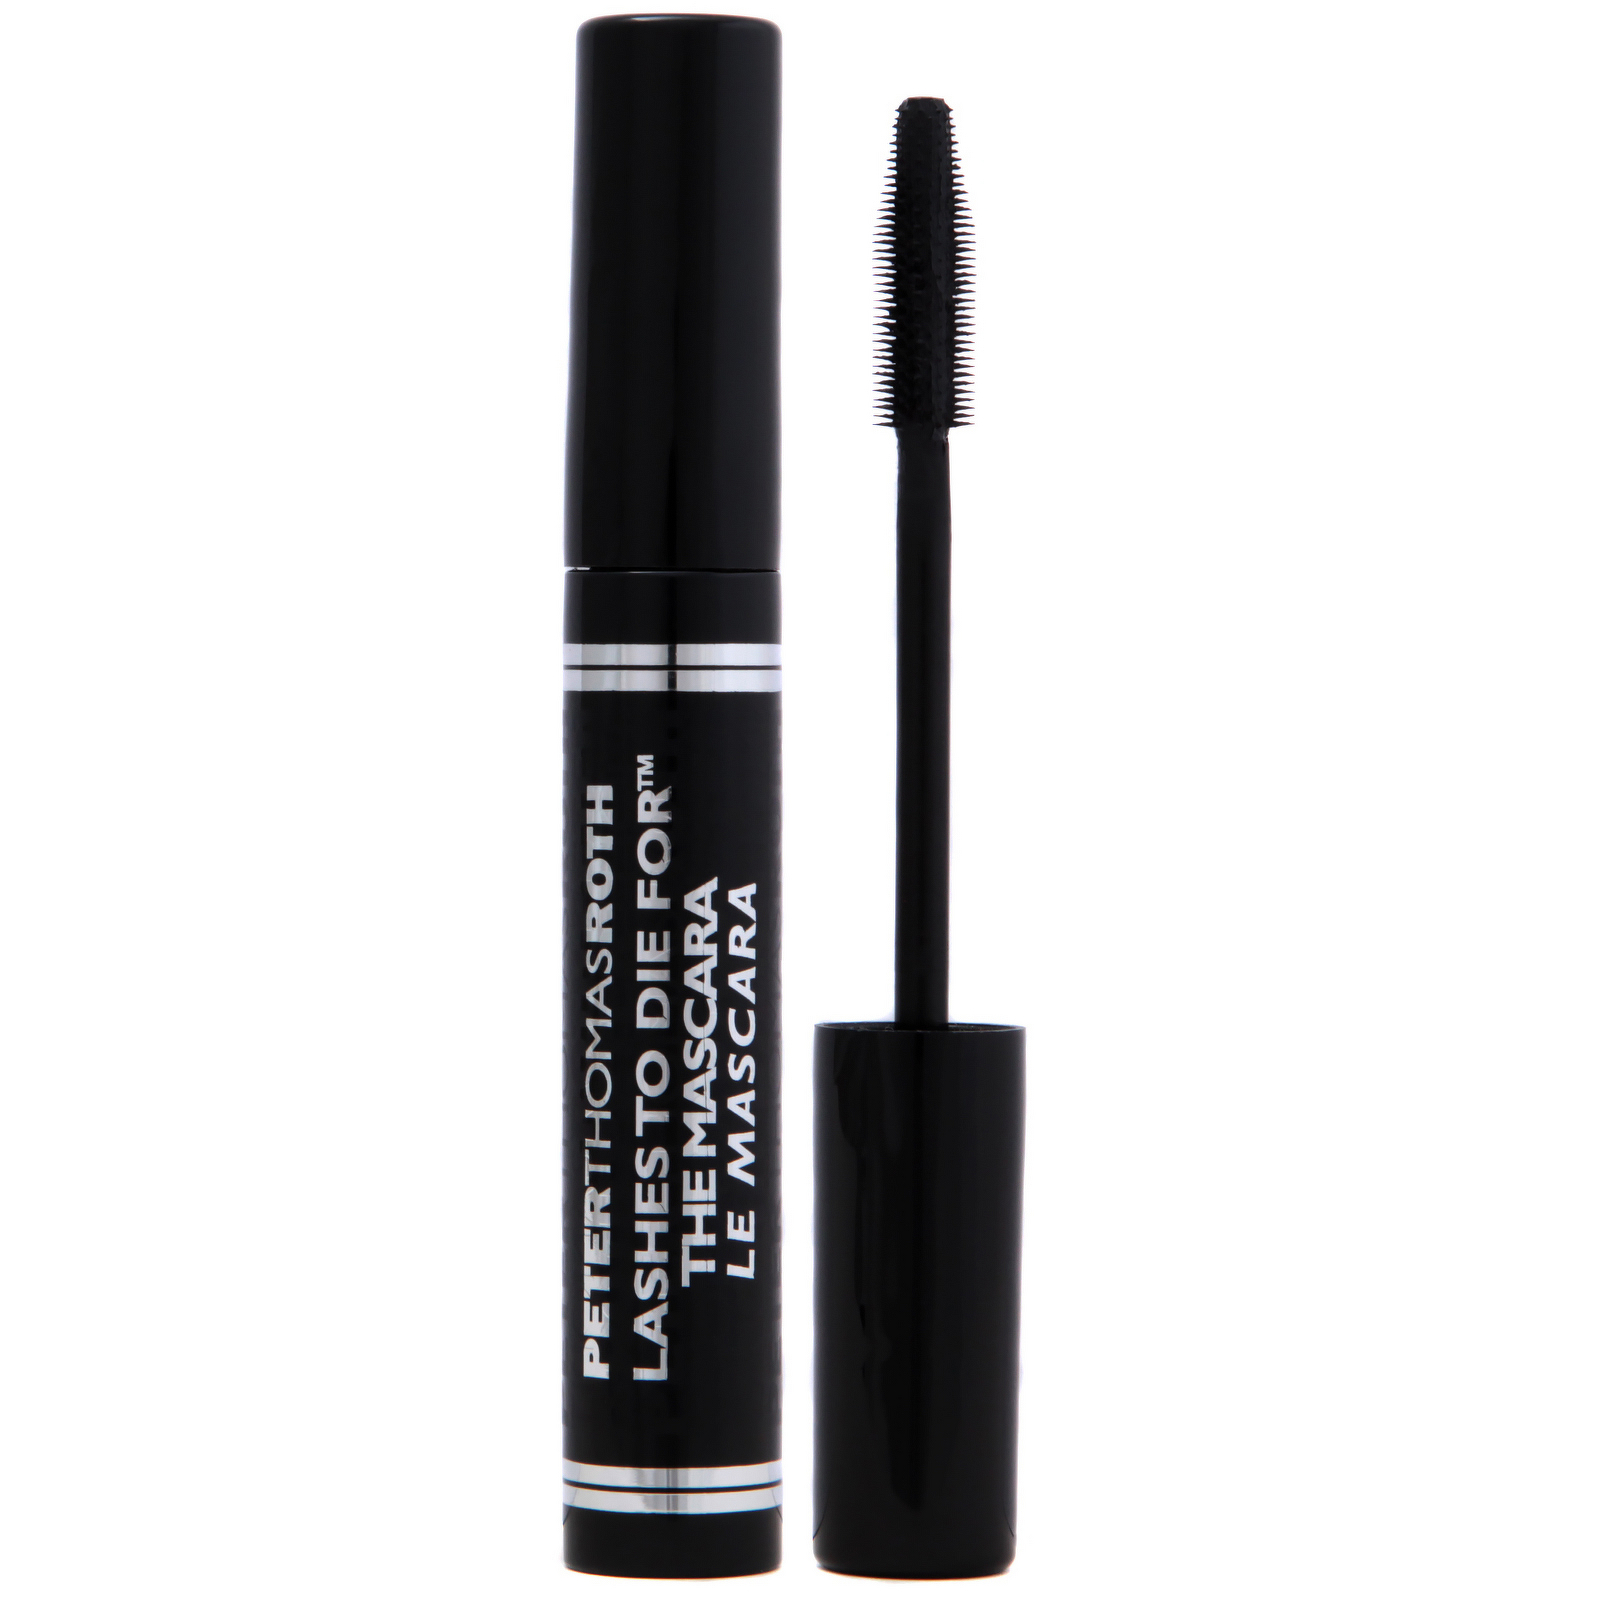 Peter Thomas Roth To Die For Lashes The Mascara Jet Black 8ml